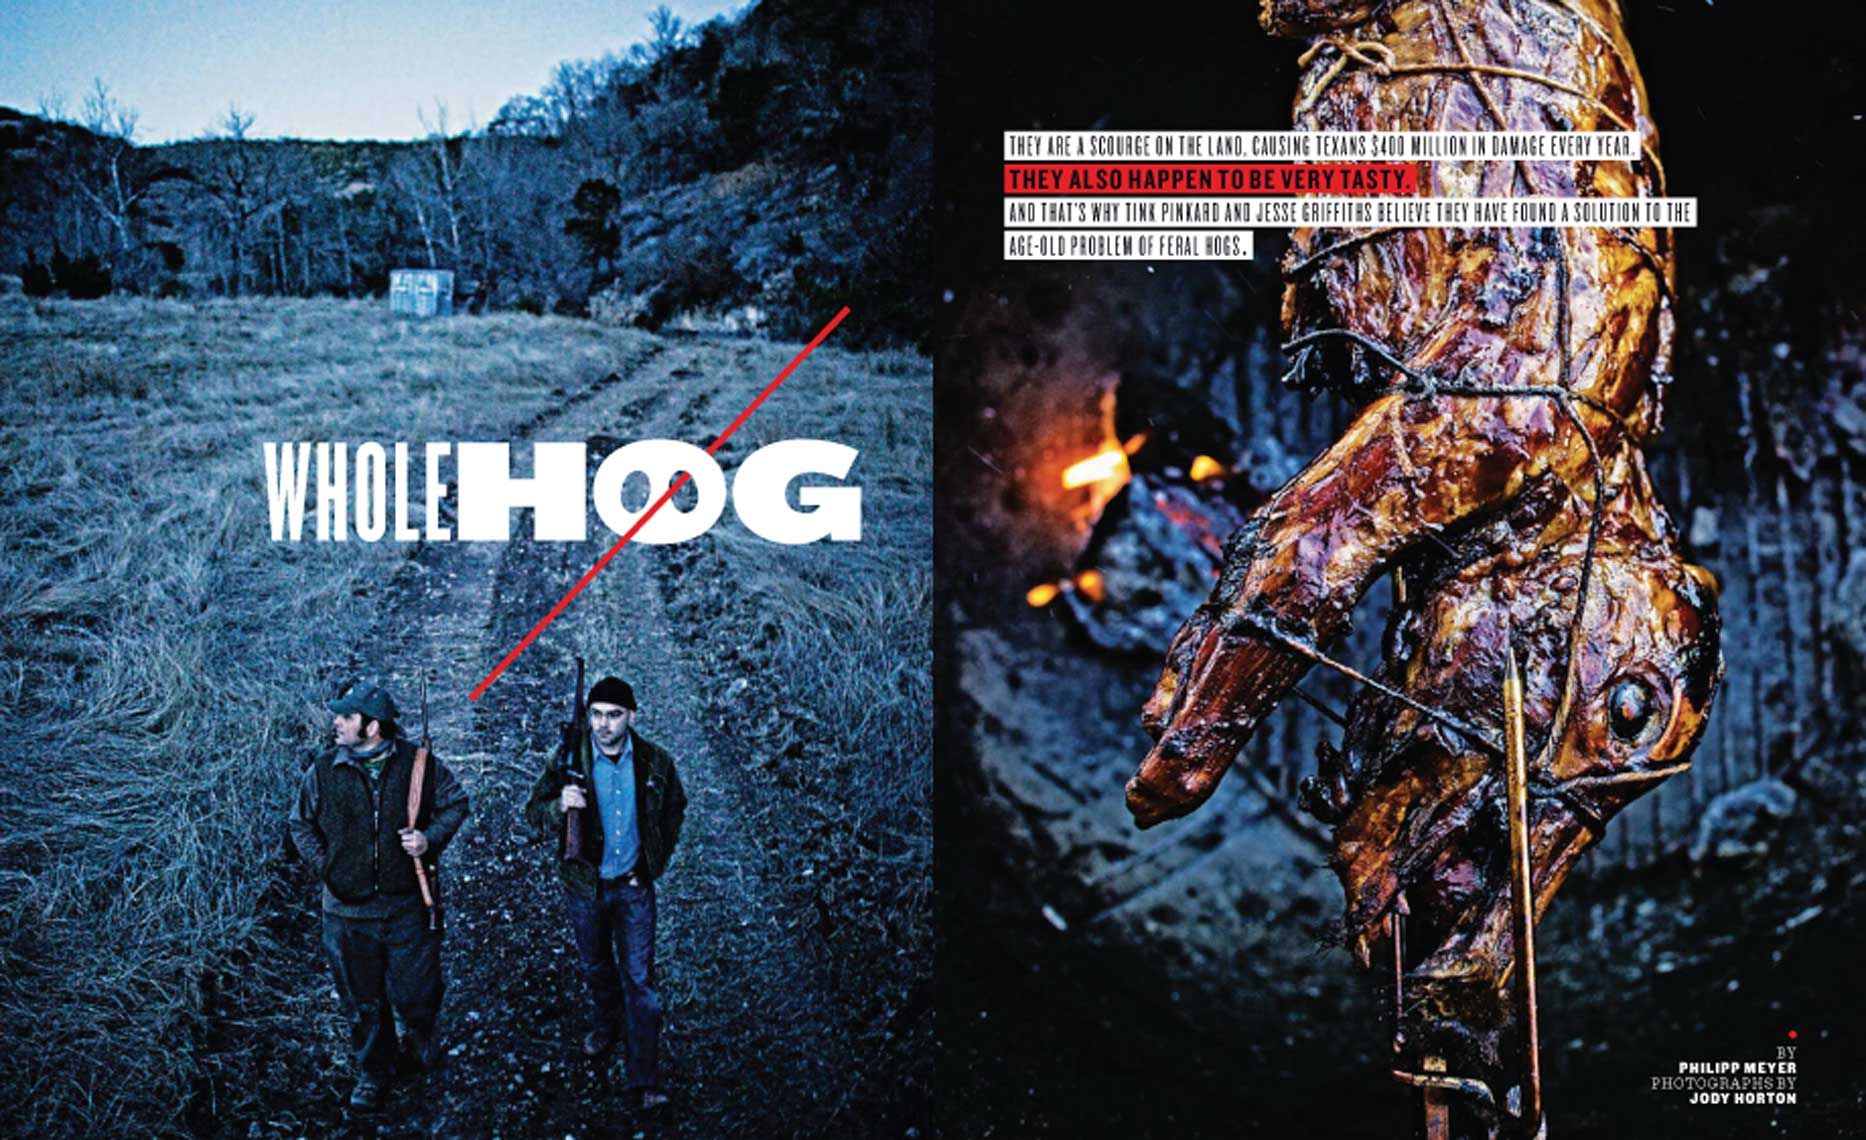 TexasMonthly-WholeHog-1